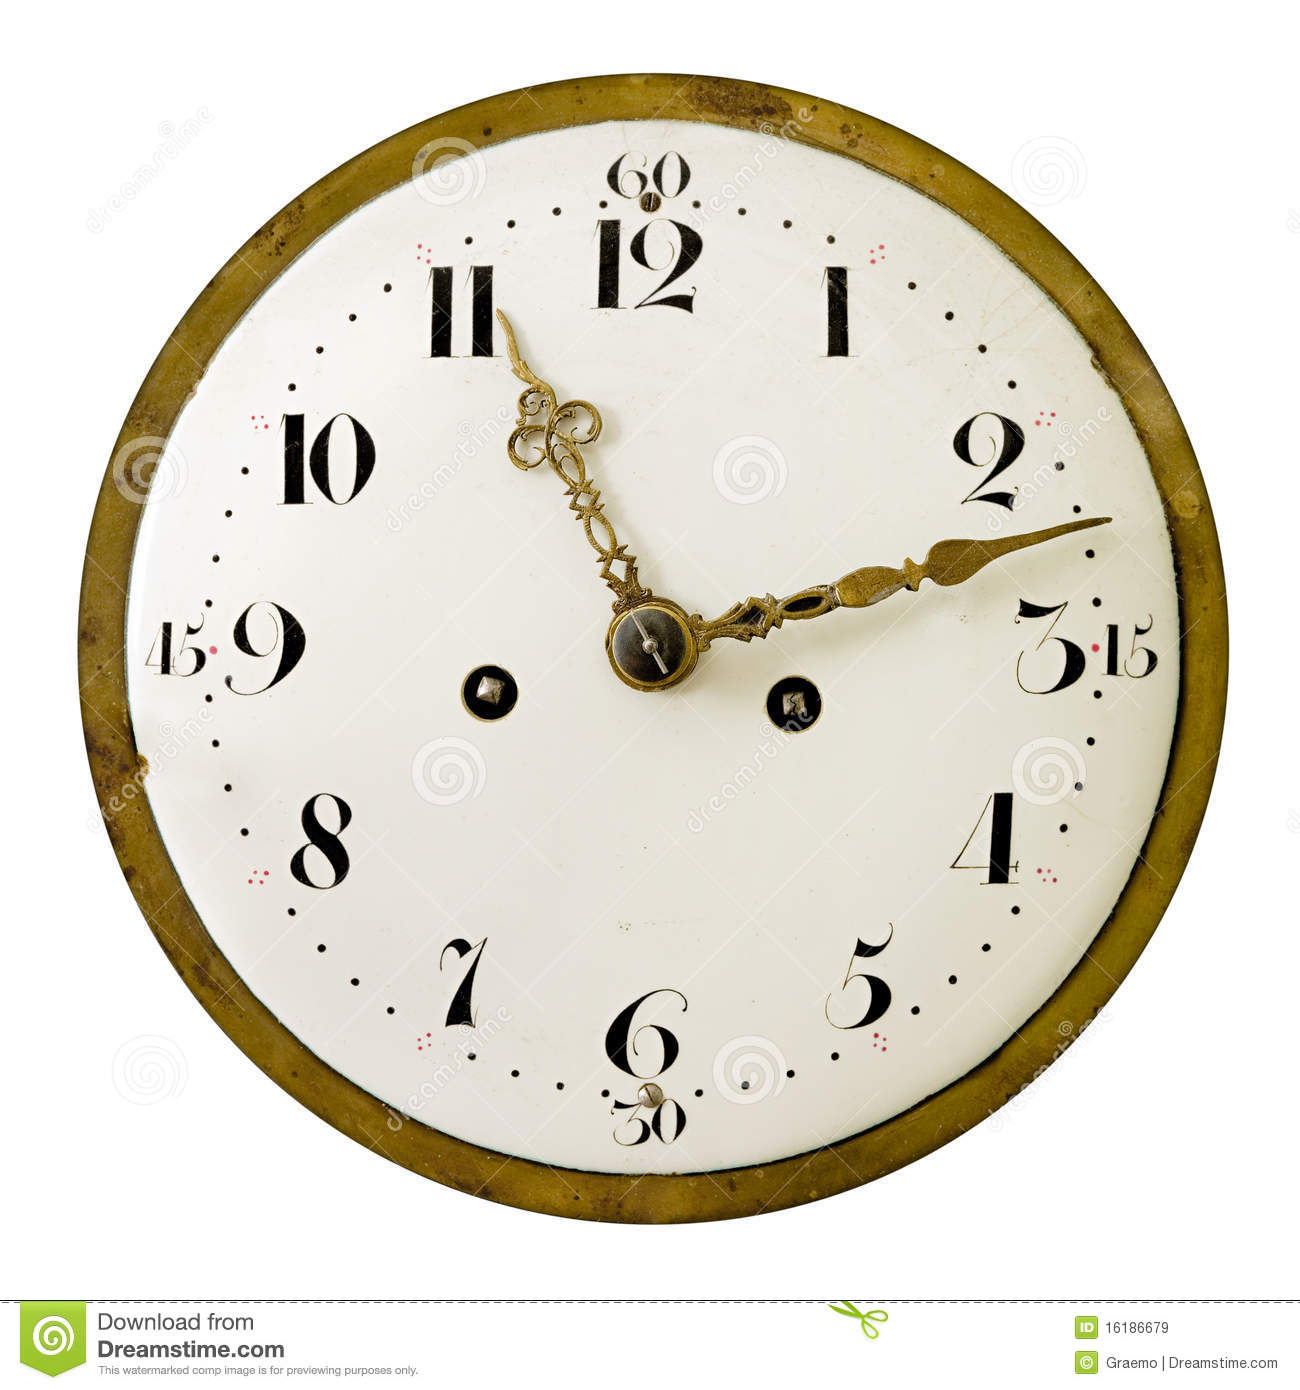 worksheet Clock Face Images similiar restore old clock faces clocks keywords vintage face royalty free stock images image 16186679